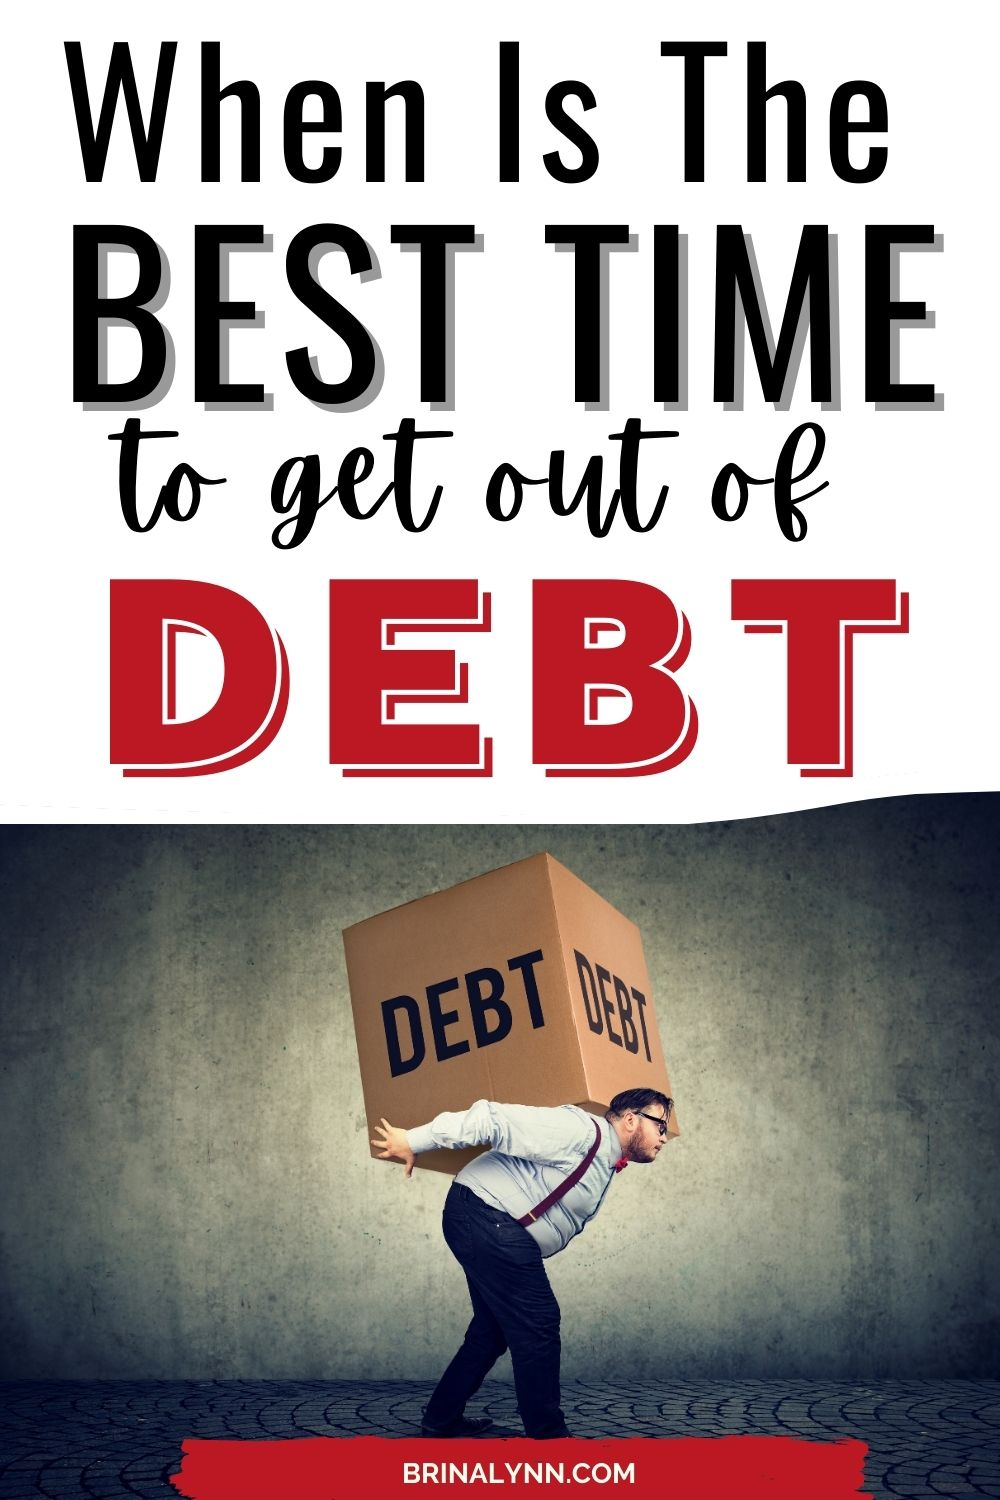 When is the BEST time to get out of debt?